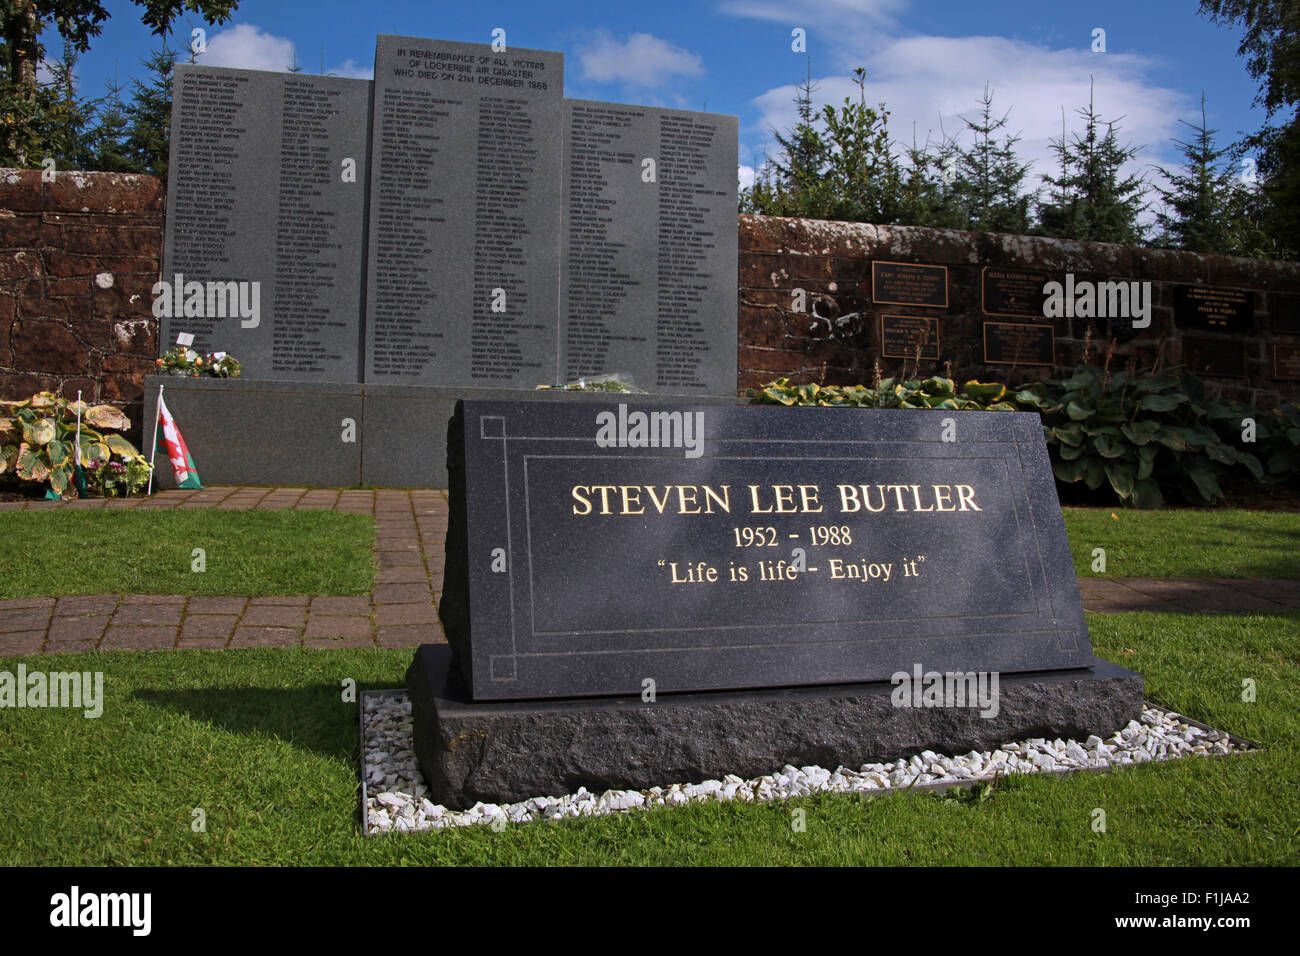 Lockerbie PanAm103 In Rememberance Memorial Steven Lee Butler - Life Is Life Enjoy It,Scotland Stock Photo